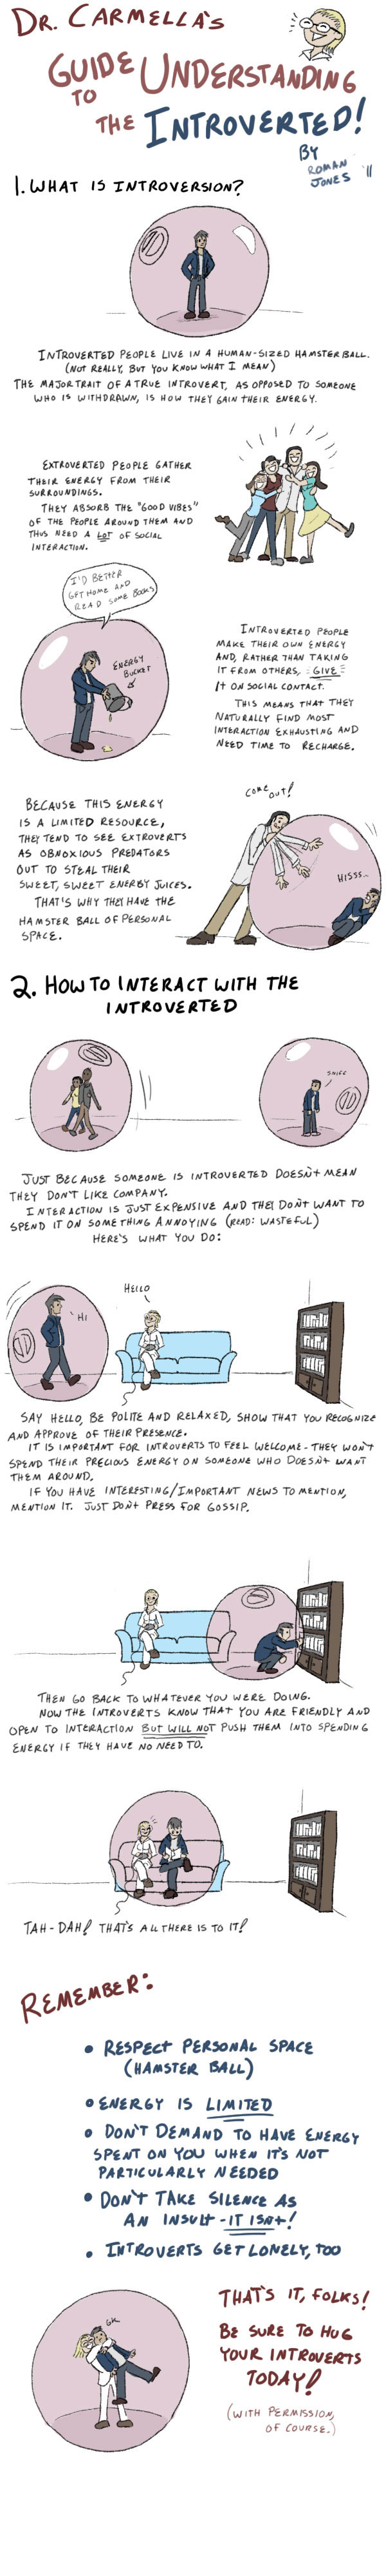 Guide to Introverts